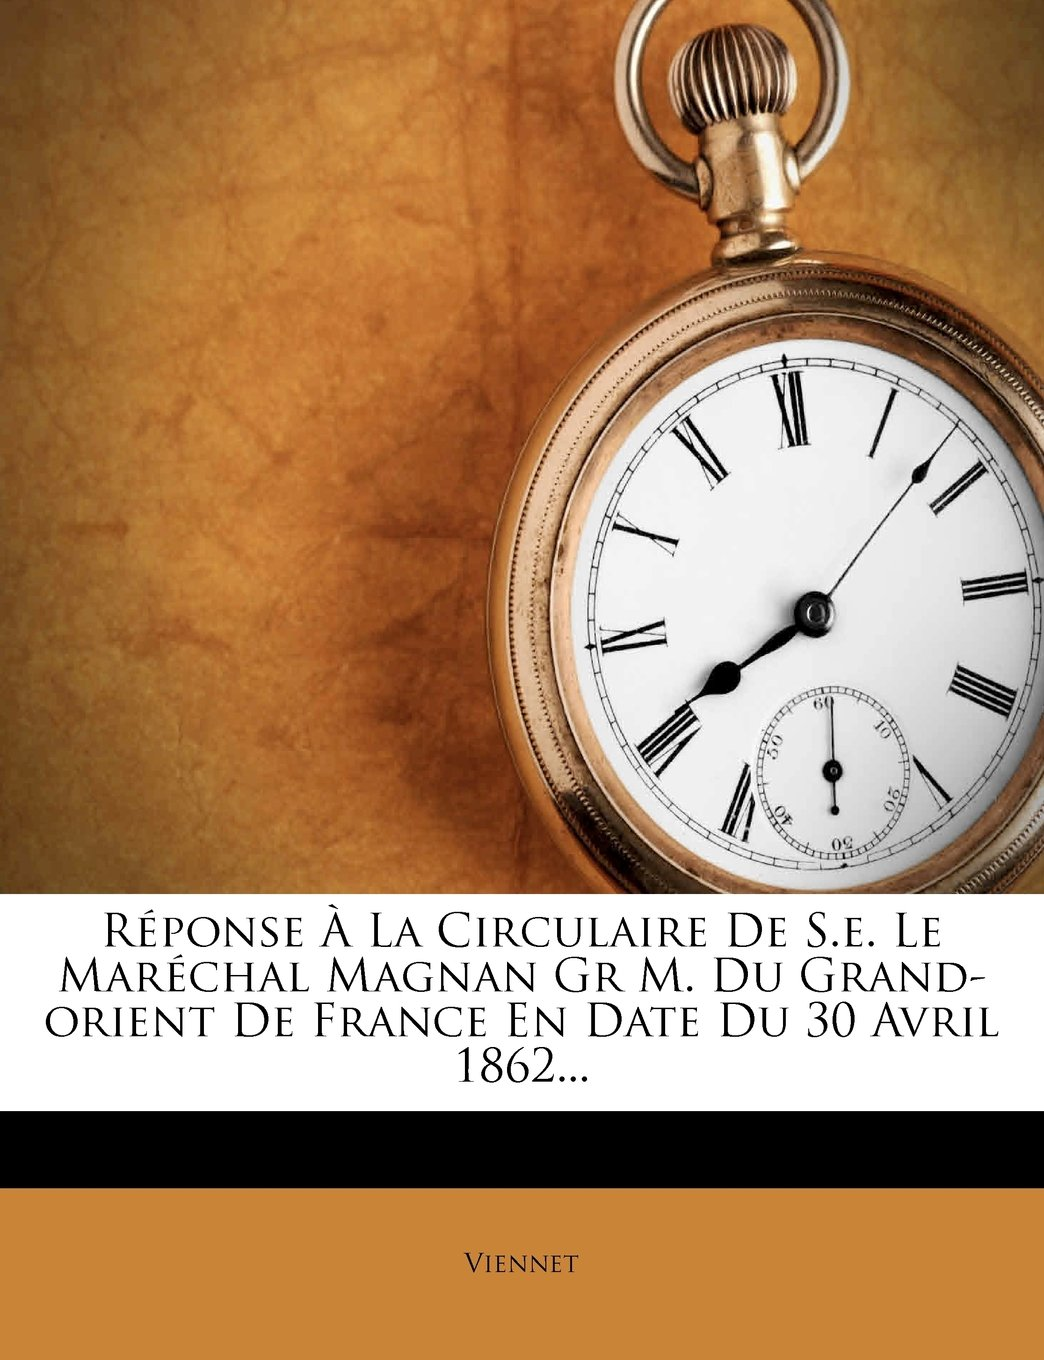 Download Réponse À La Circulaire De S.e. Le Maréchal Magnan Gr M. Du Grand-orient De France En Date Du 30 Avril 1862... (French Edition) ebook